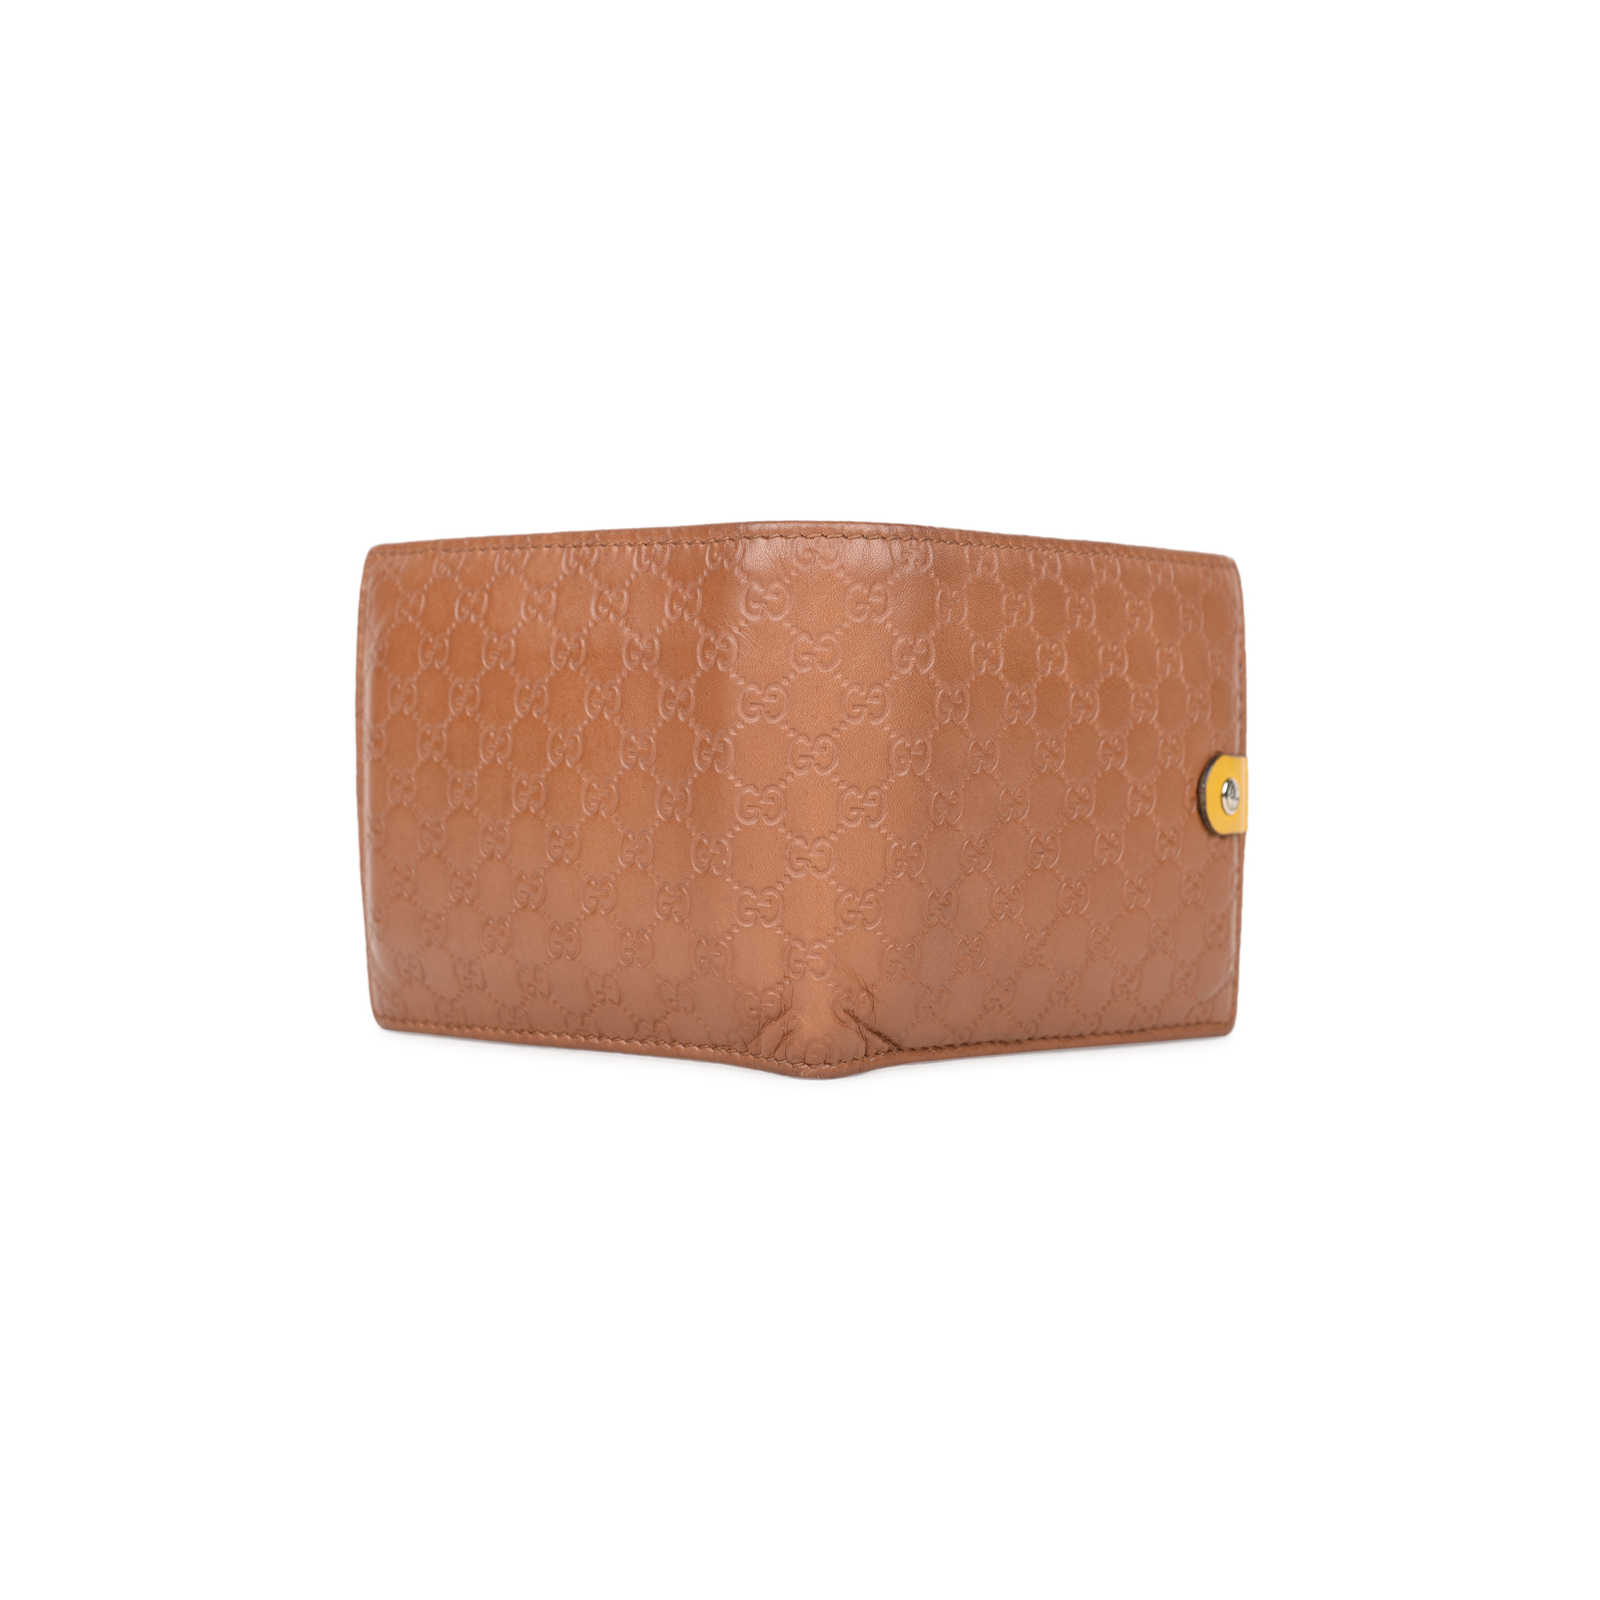 6d3835b68b35 ... Authentic Second Hand Gucci Microguccissima Leather Wallet  (PSS-394-00023) - Thumbnail ...